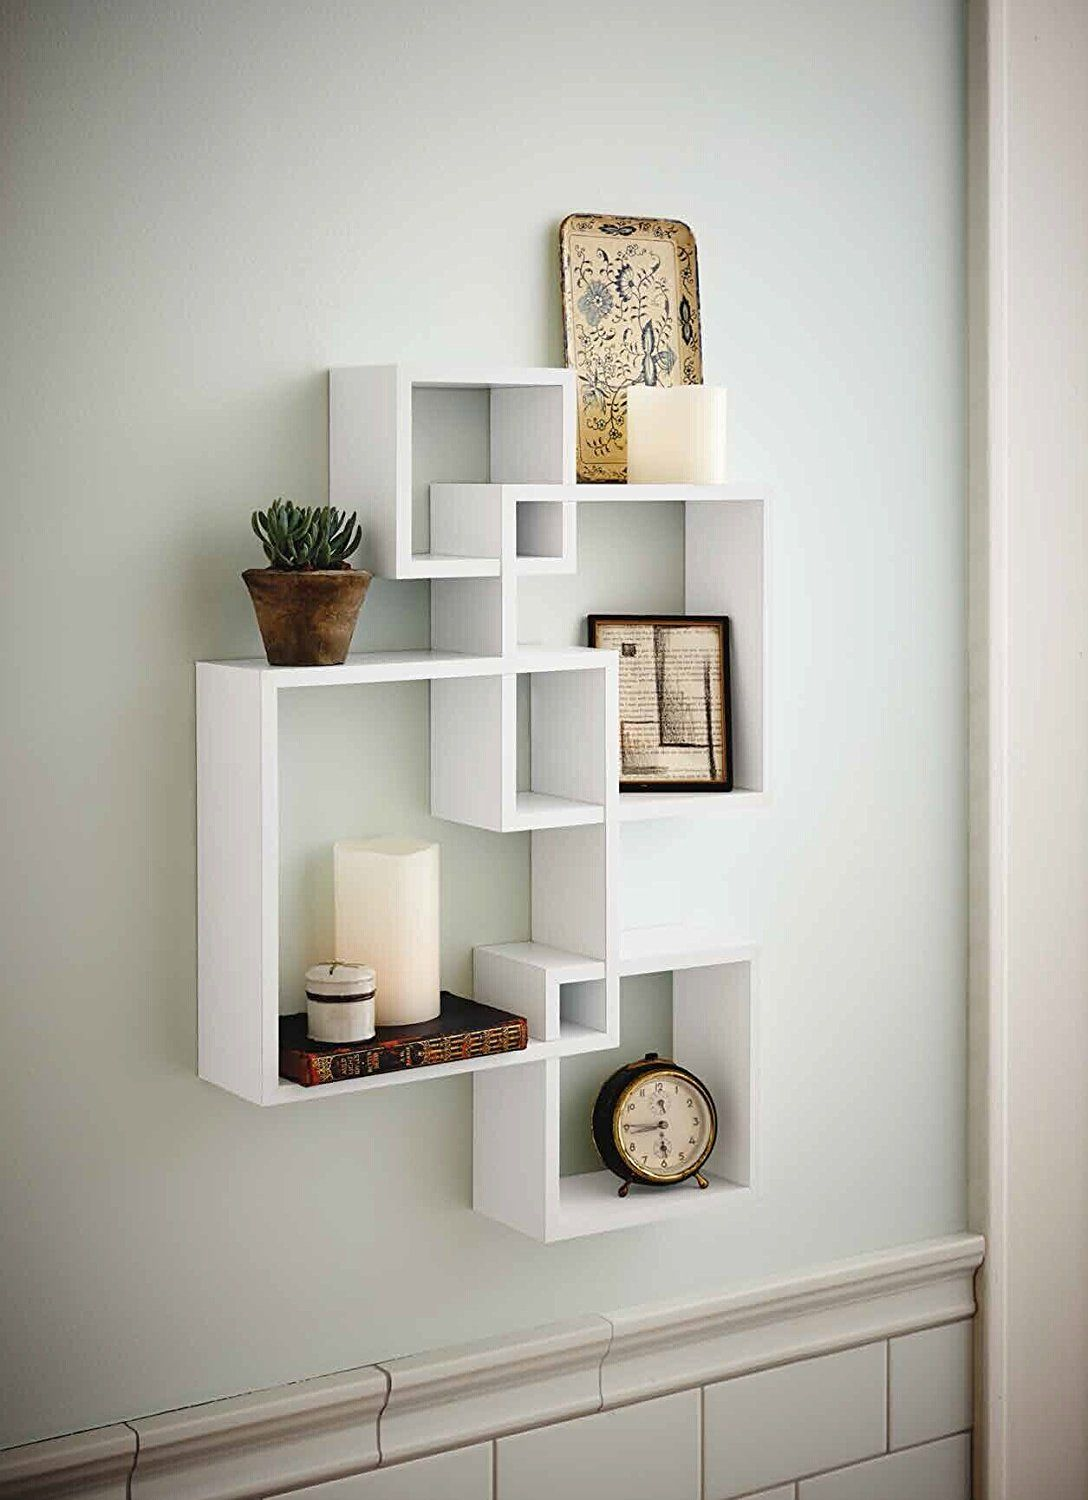 Amazon com shelving solution intersecting wall shelf with 2 candles white set of 4 home kitchen